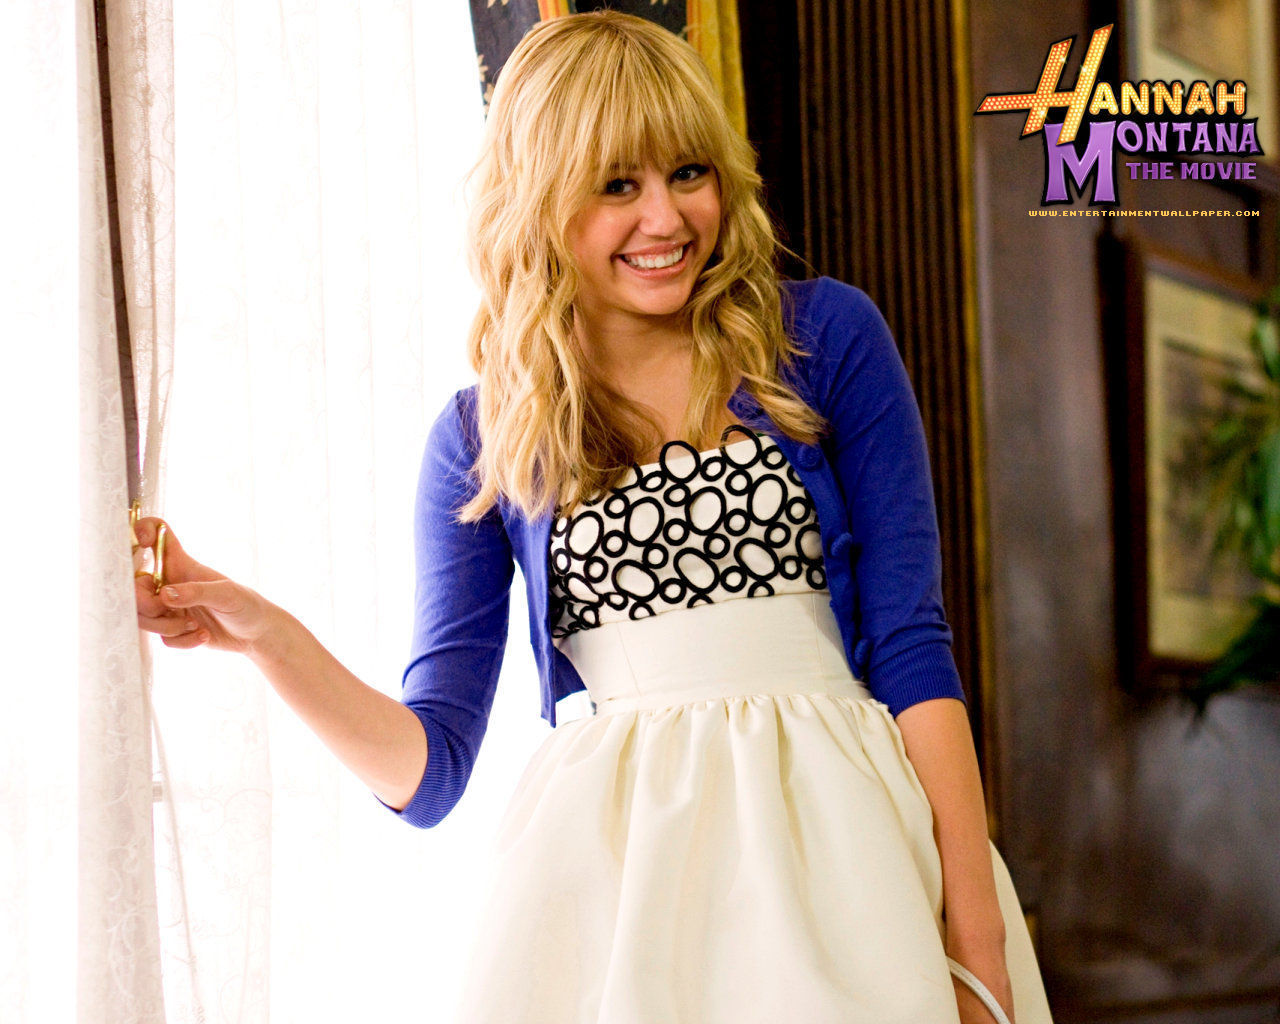 http://images2.fanpop.com/images/photos/5400000/Hannah-Montana-The-Movie-miley-cyrus-5466947-1280-1024.jpg